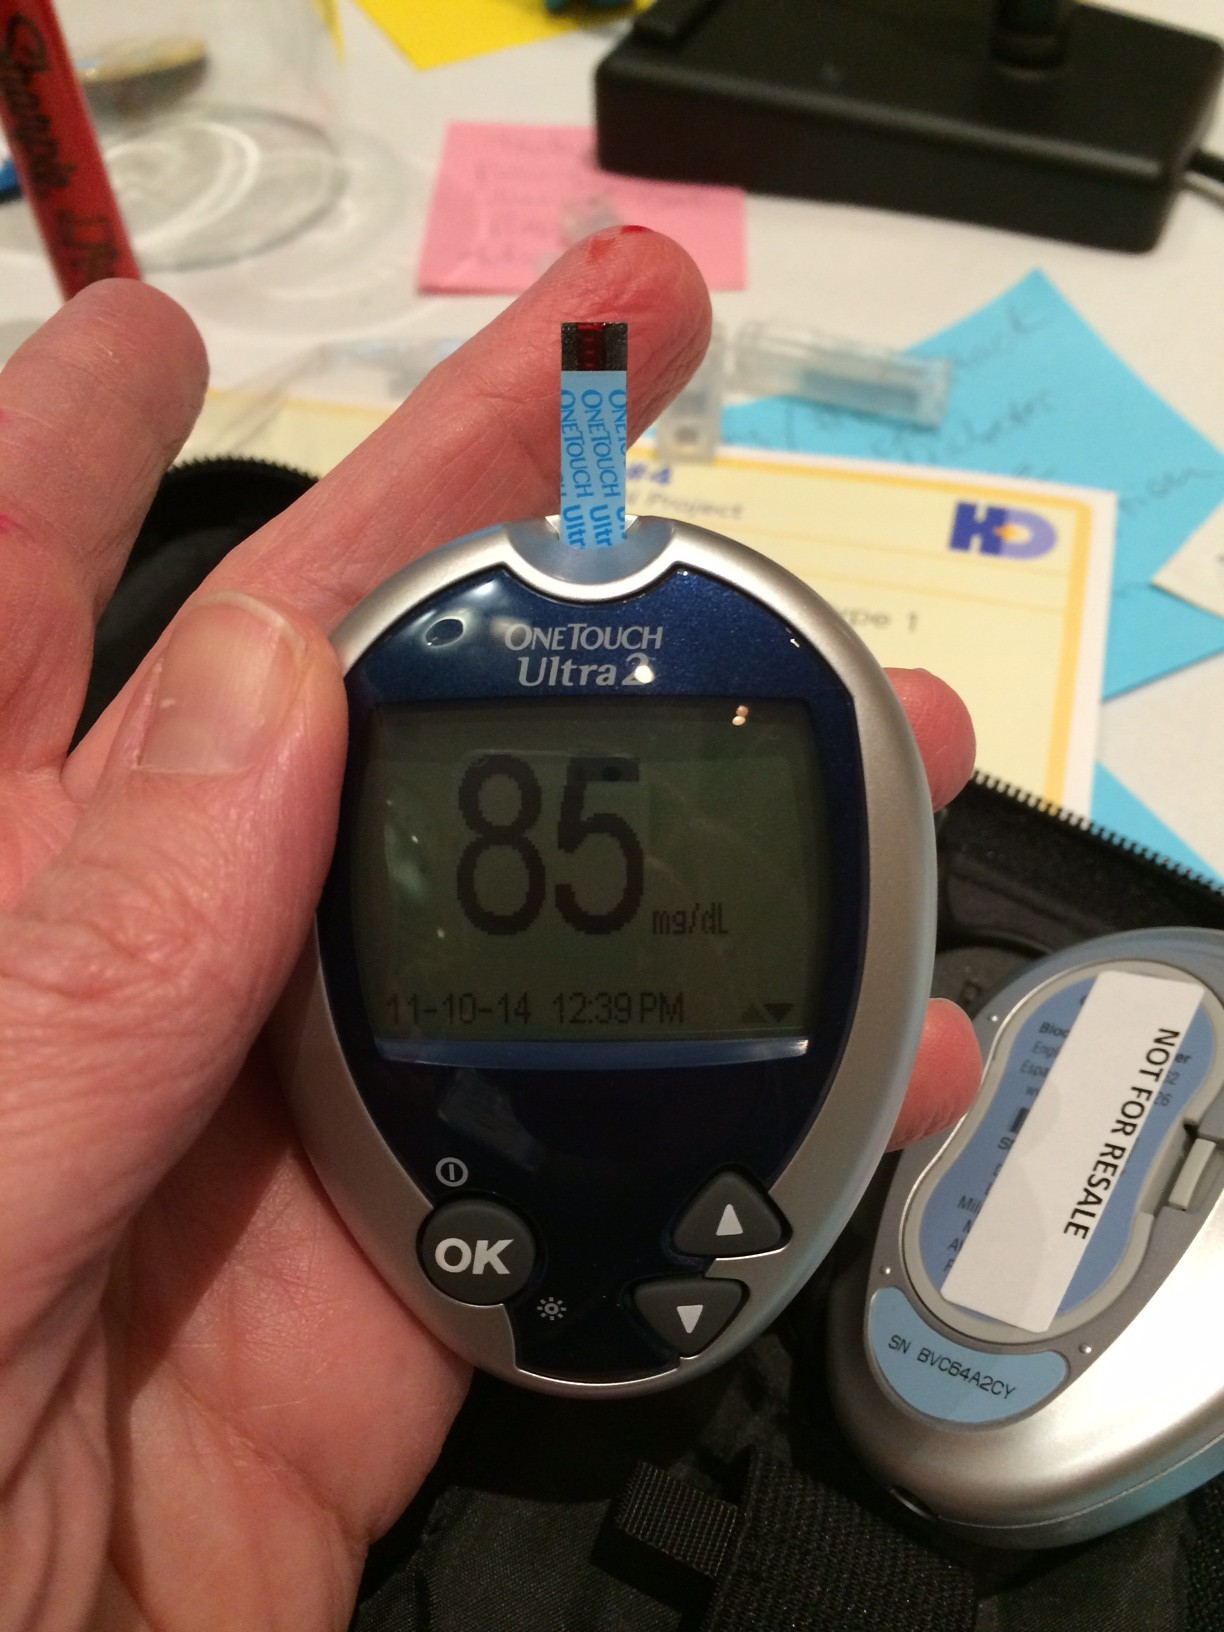 Glucose meter displaying the number 85